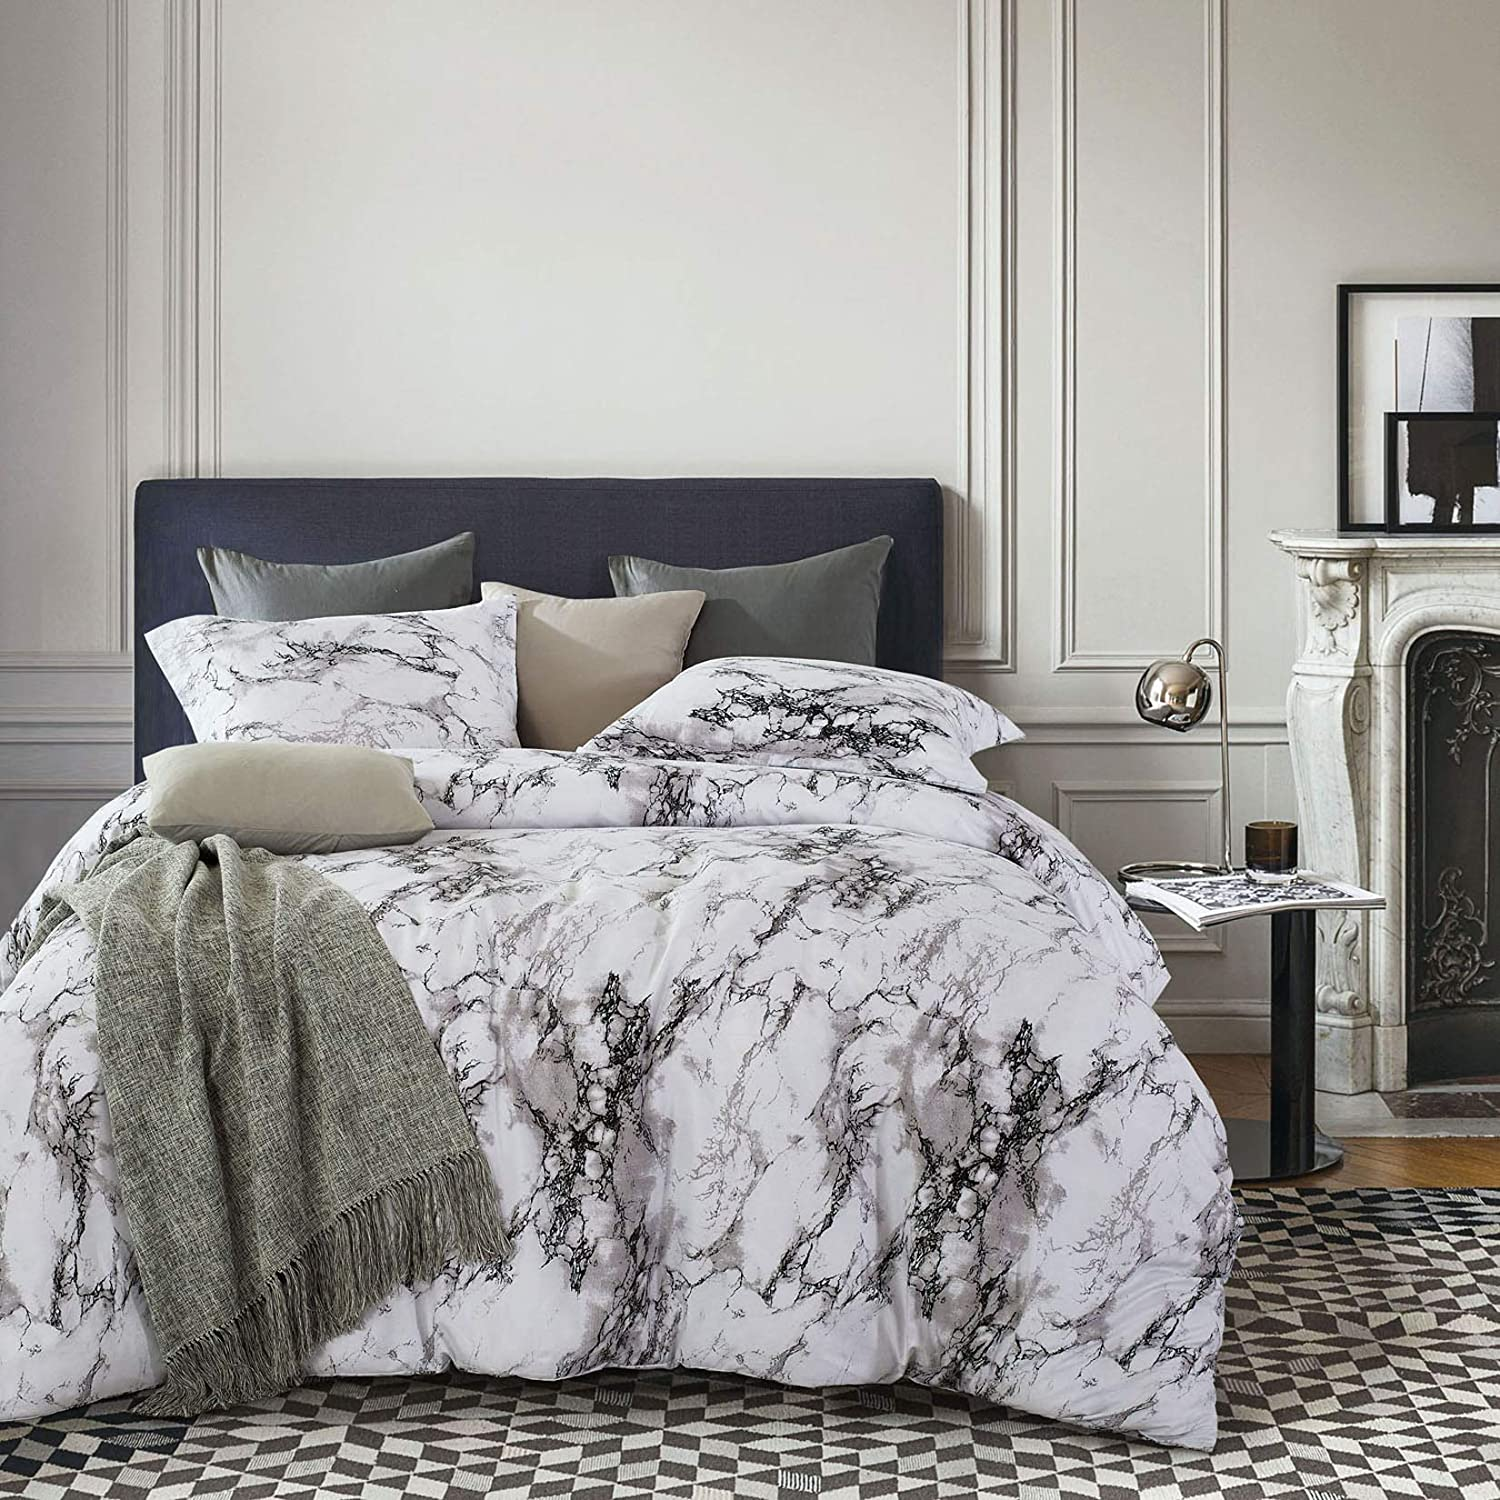 wake in cloud marble comforter set gray grey black and white pattern printed soft microfiber bedding 3pcs king size